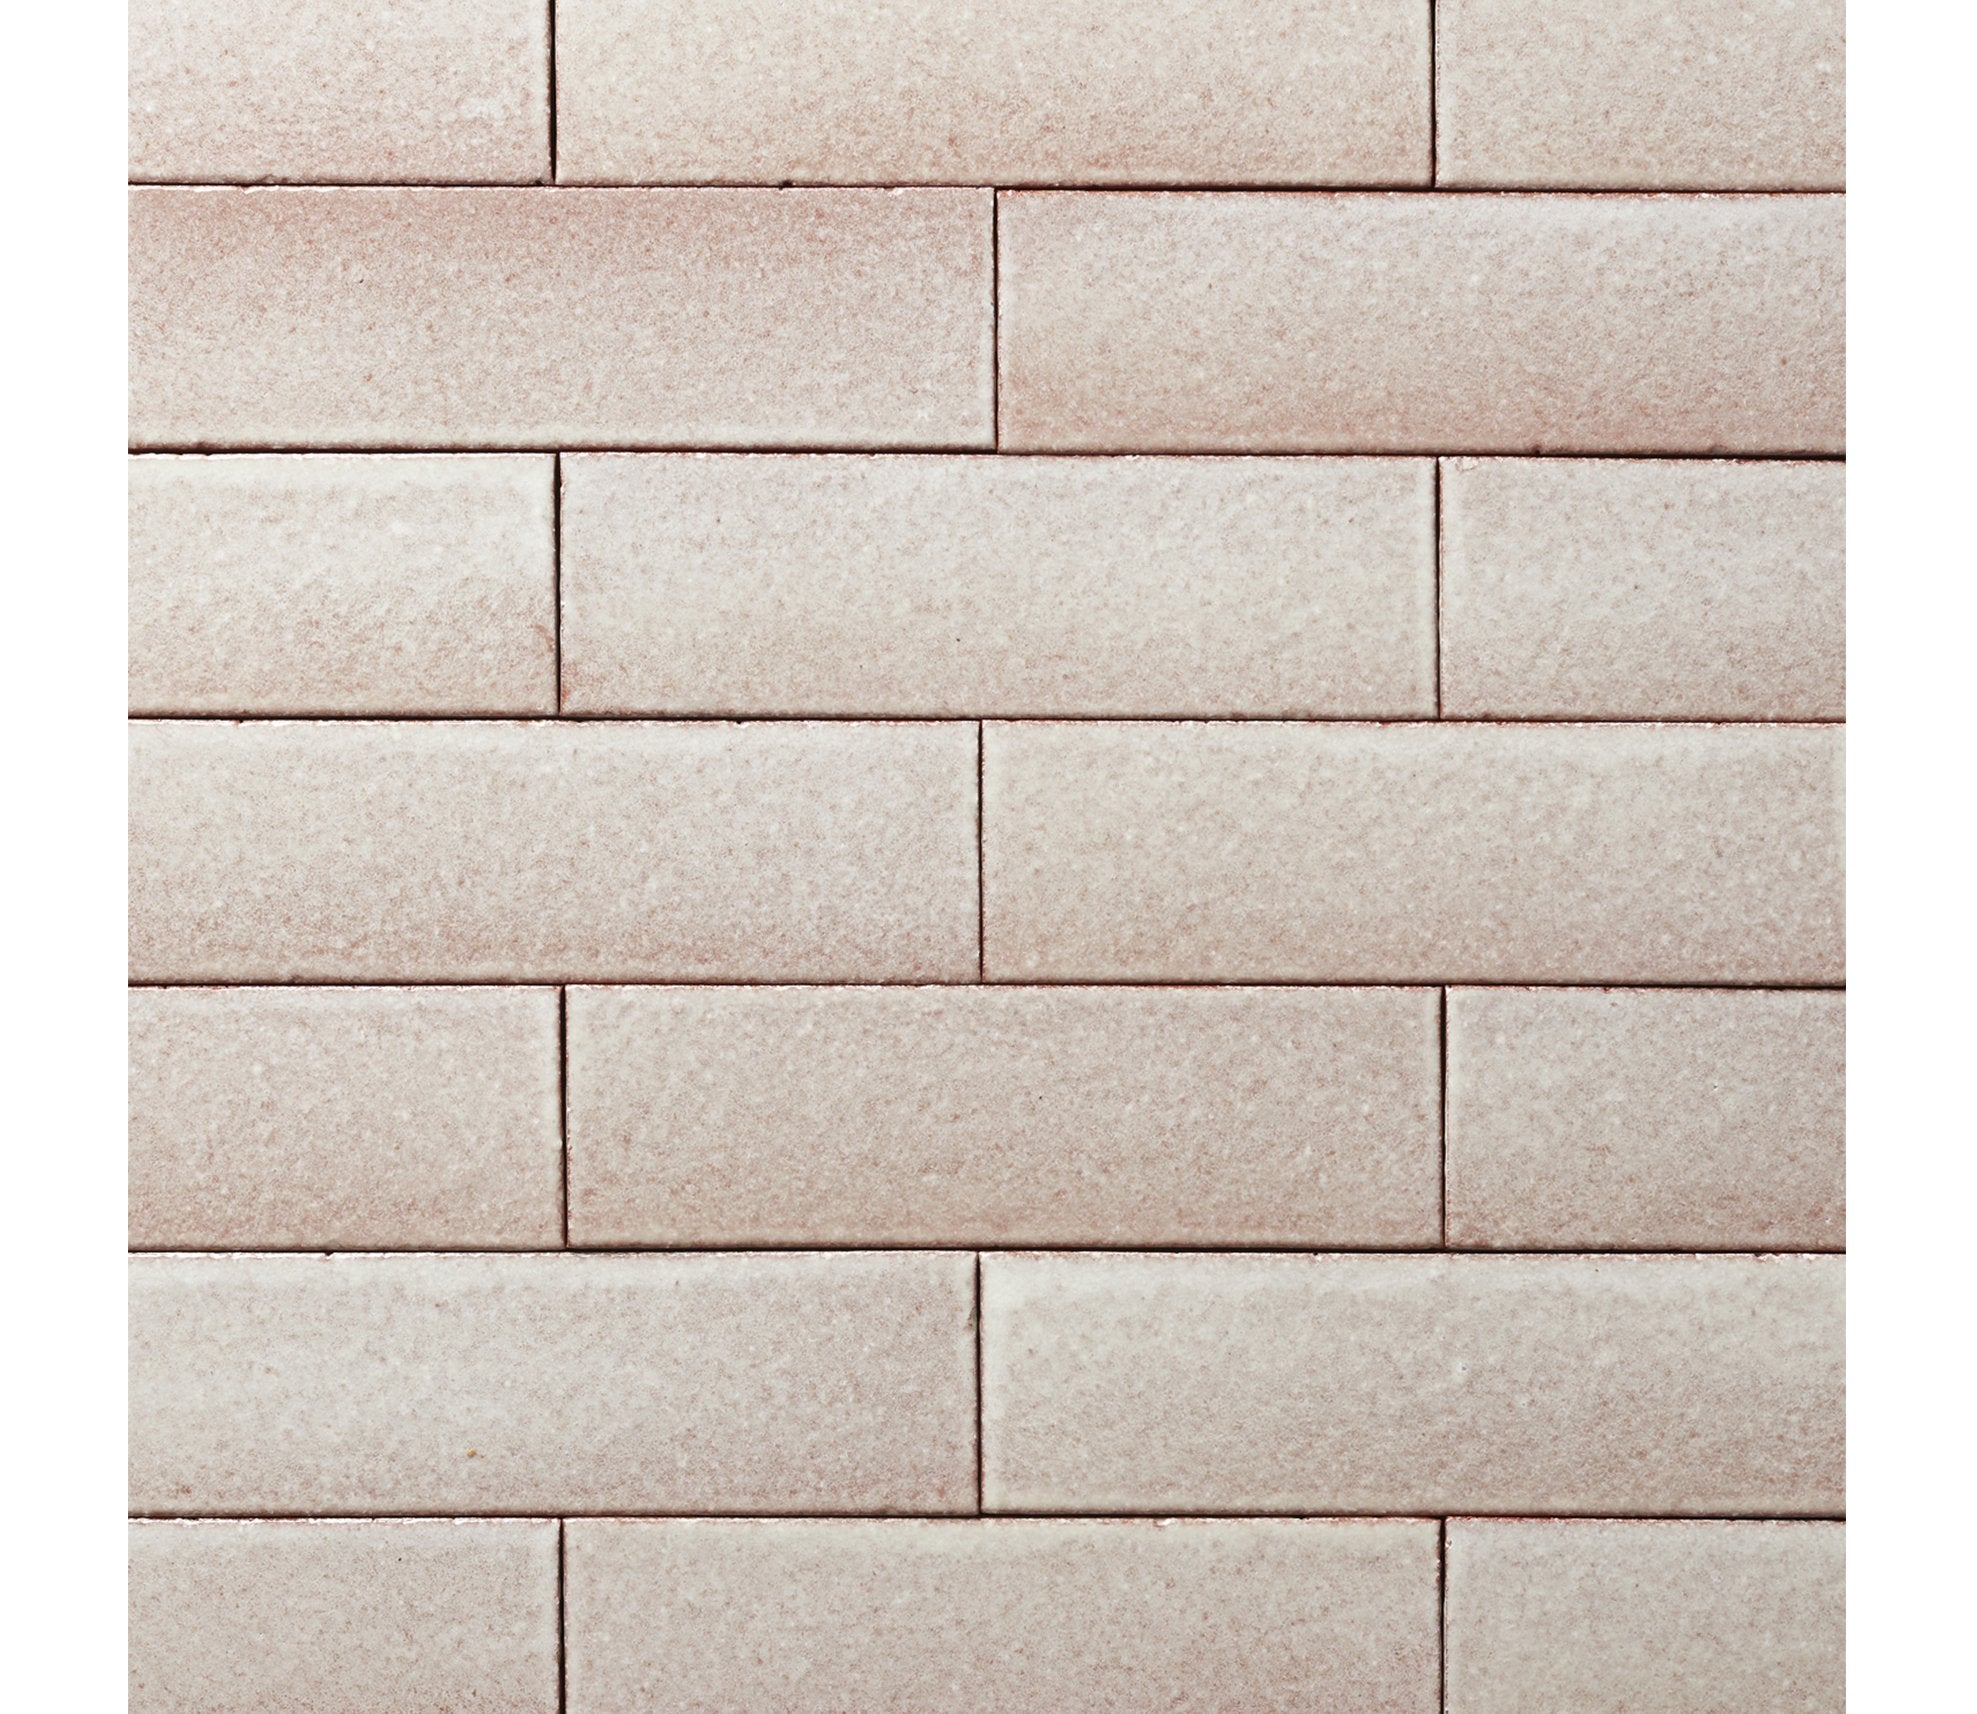 Terra Firma Glazed Bricks Product Image 36